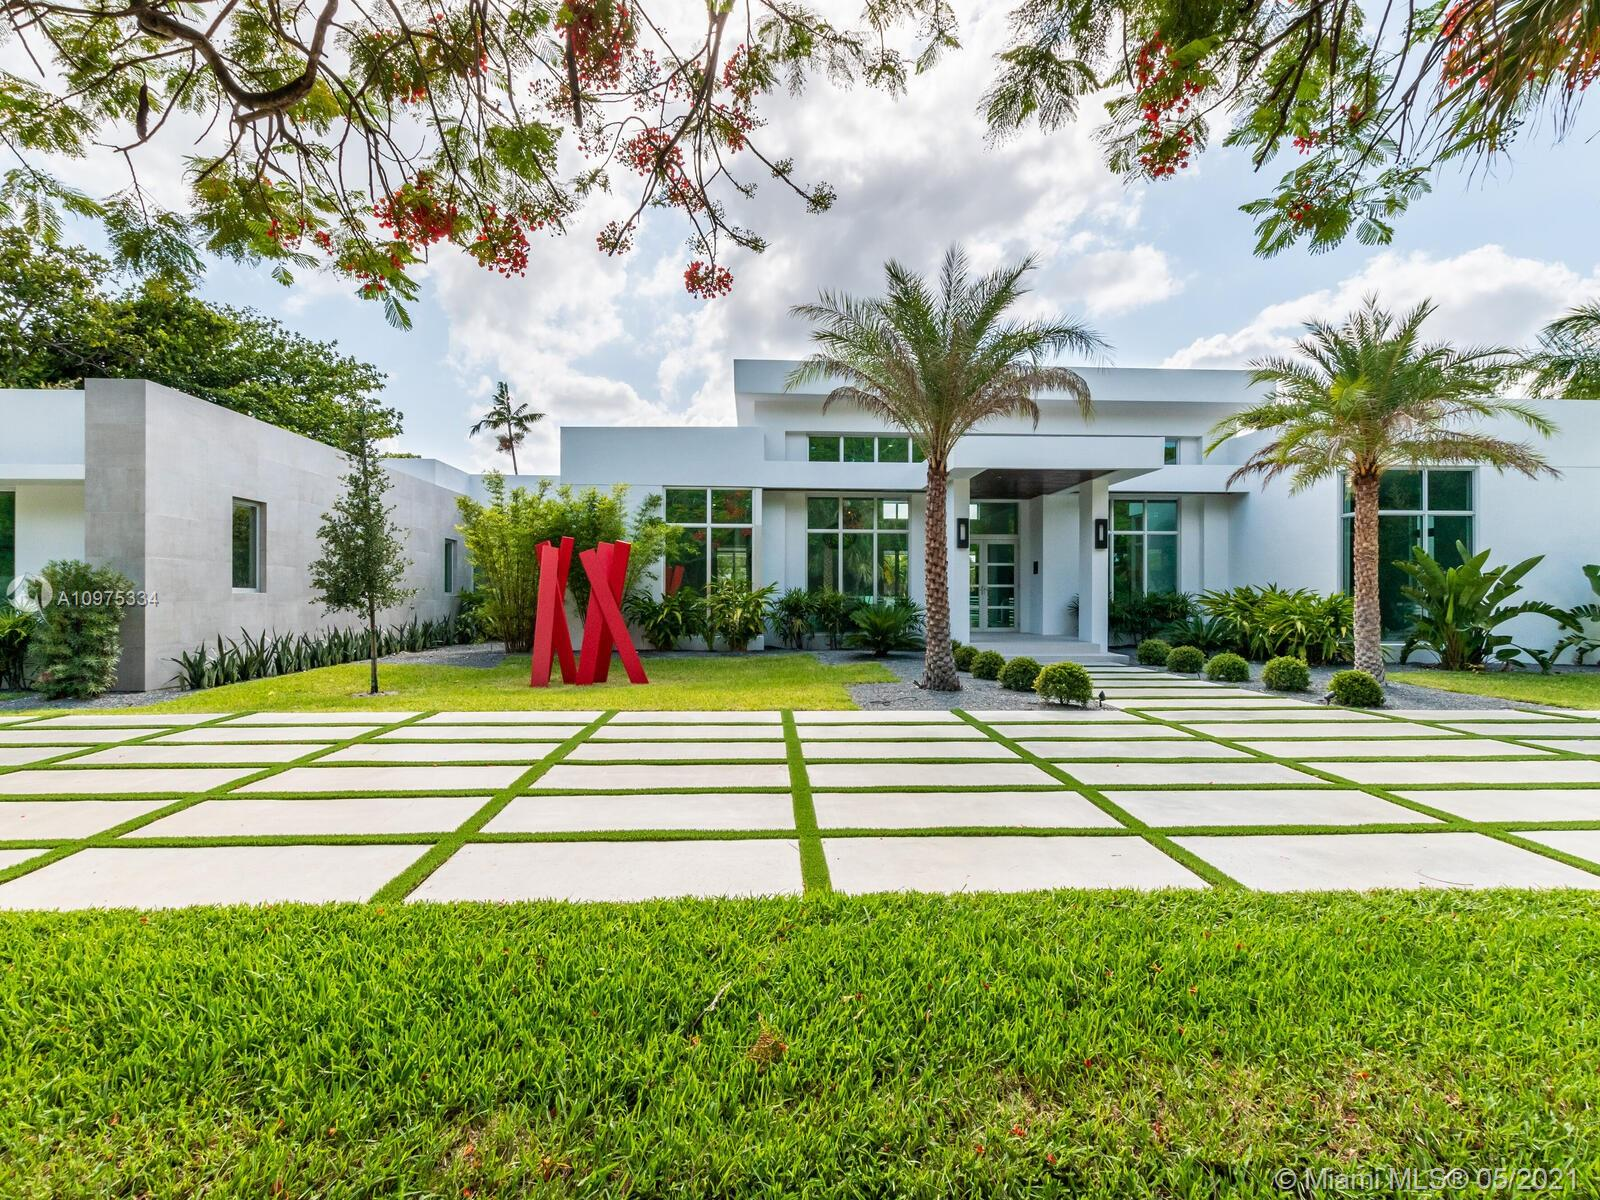 A BAUHAUS INSPIRED ONE-ACRE LOT, BY RENOWNED ARCHITECT MARK REARDON. SURROUNDED BY THE ELEGANT CORAL GABLES AND PINECREST AREA. OUR 7,700 SF RESIDENCE OFFERS SIX BEDROOMS PLUS A MEDIA ROOM AND SEVEN BATHROOMS, EUROPEAN FLOORS INCLUDING A MAGNIFICENT POWDER ROOM & CABANA BATH WITH VANITIES MADE IN ITALY BY LAGUNA. THE KITCHEN HAS AN IMPRESSIVE AND MODERN LAYOUT WITH ITALIAN CABINETRY BY VENETA CUCINE, WOLF & SUBZERO APPLIANCES, BREAKFAST AREA, WINE CELLAR AND A BAR. THE LIVING ROOM HAS A GORGEOUS VIEW OF THE INFINITY POOL WITH SALT SYSTEM, JACUZZI AND A STUNNING TERRACE FOR A SUMMER KITCHEN.